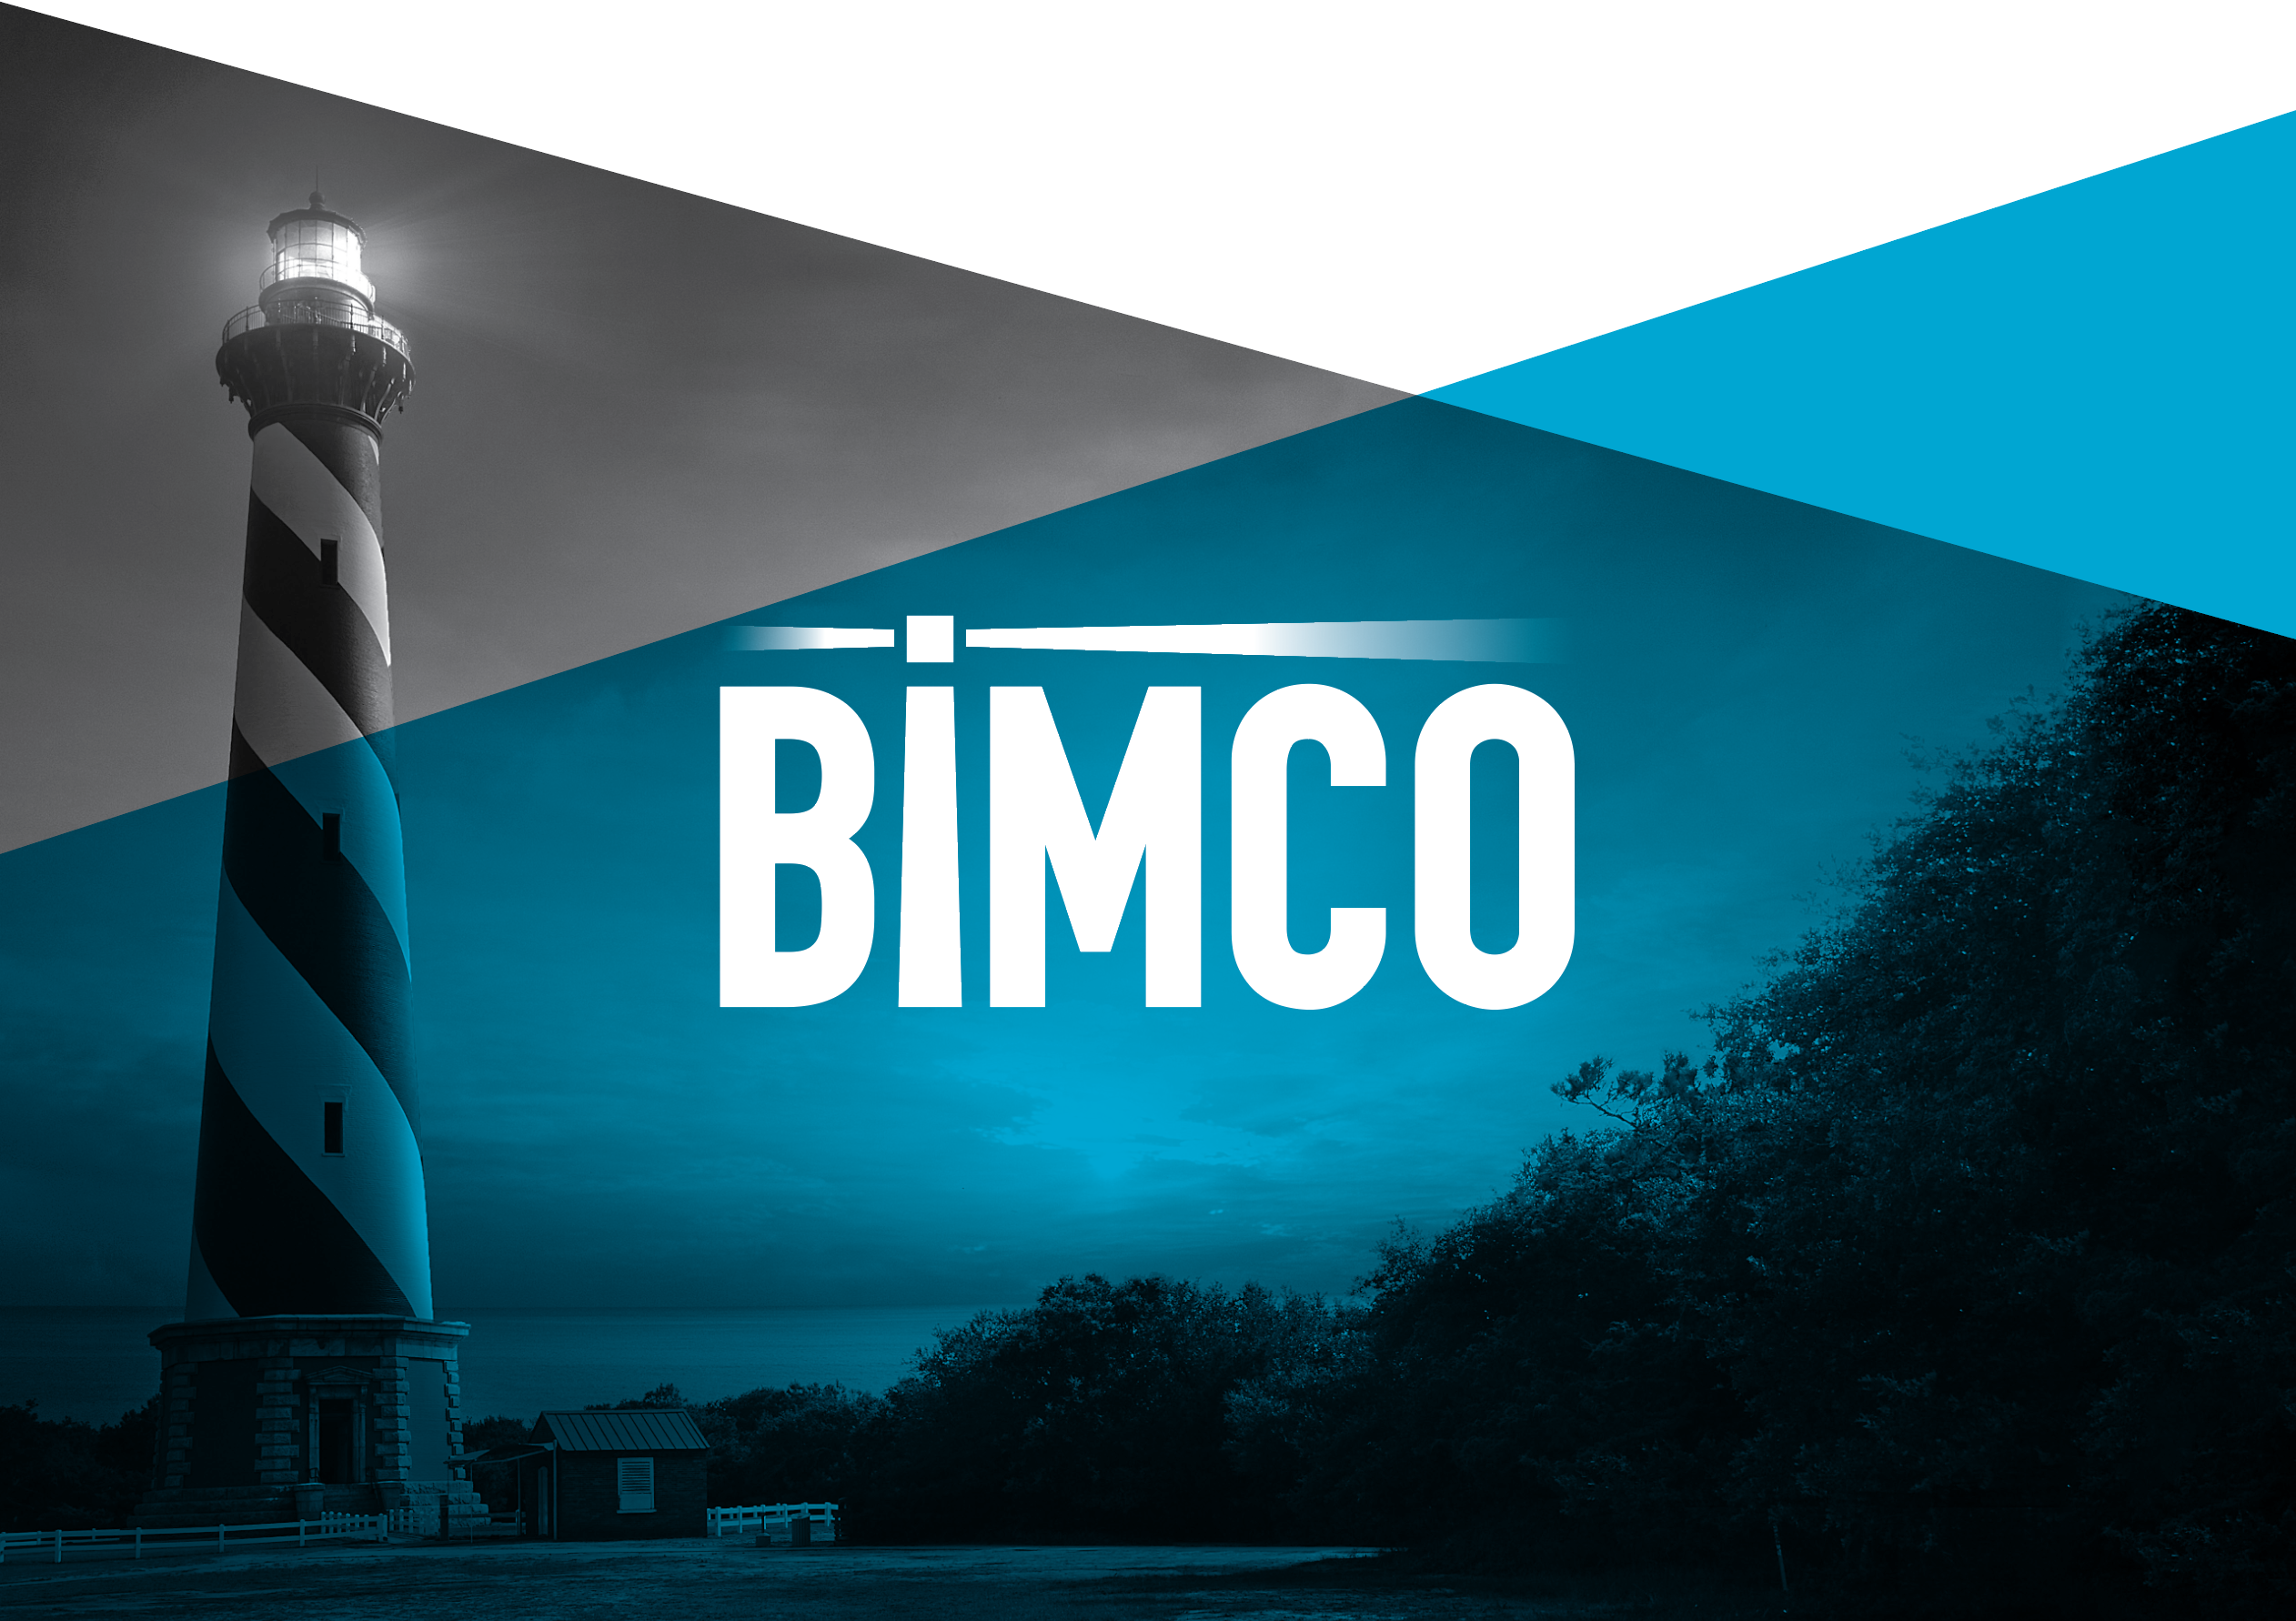 BIMCO is the world's largest direct-membership organisation